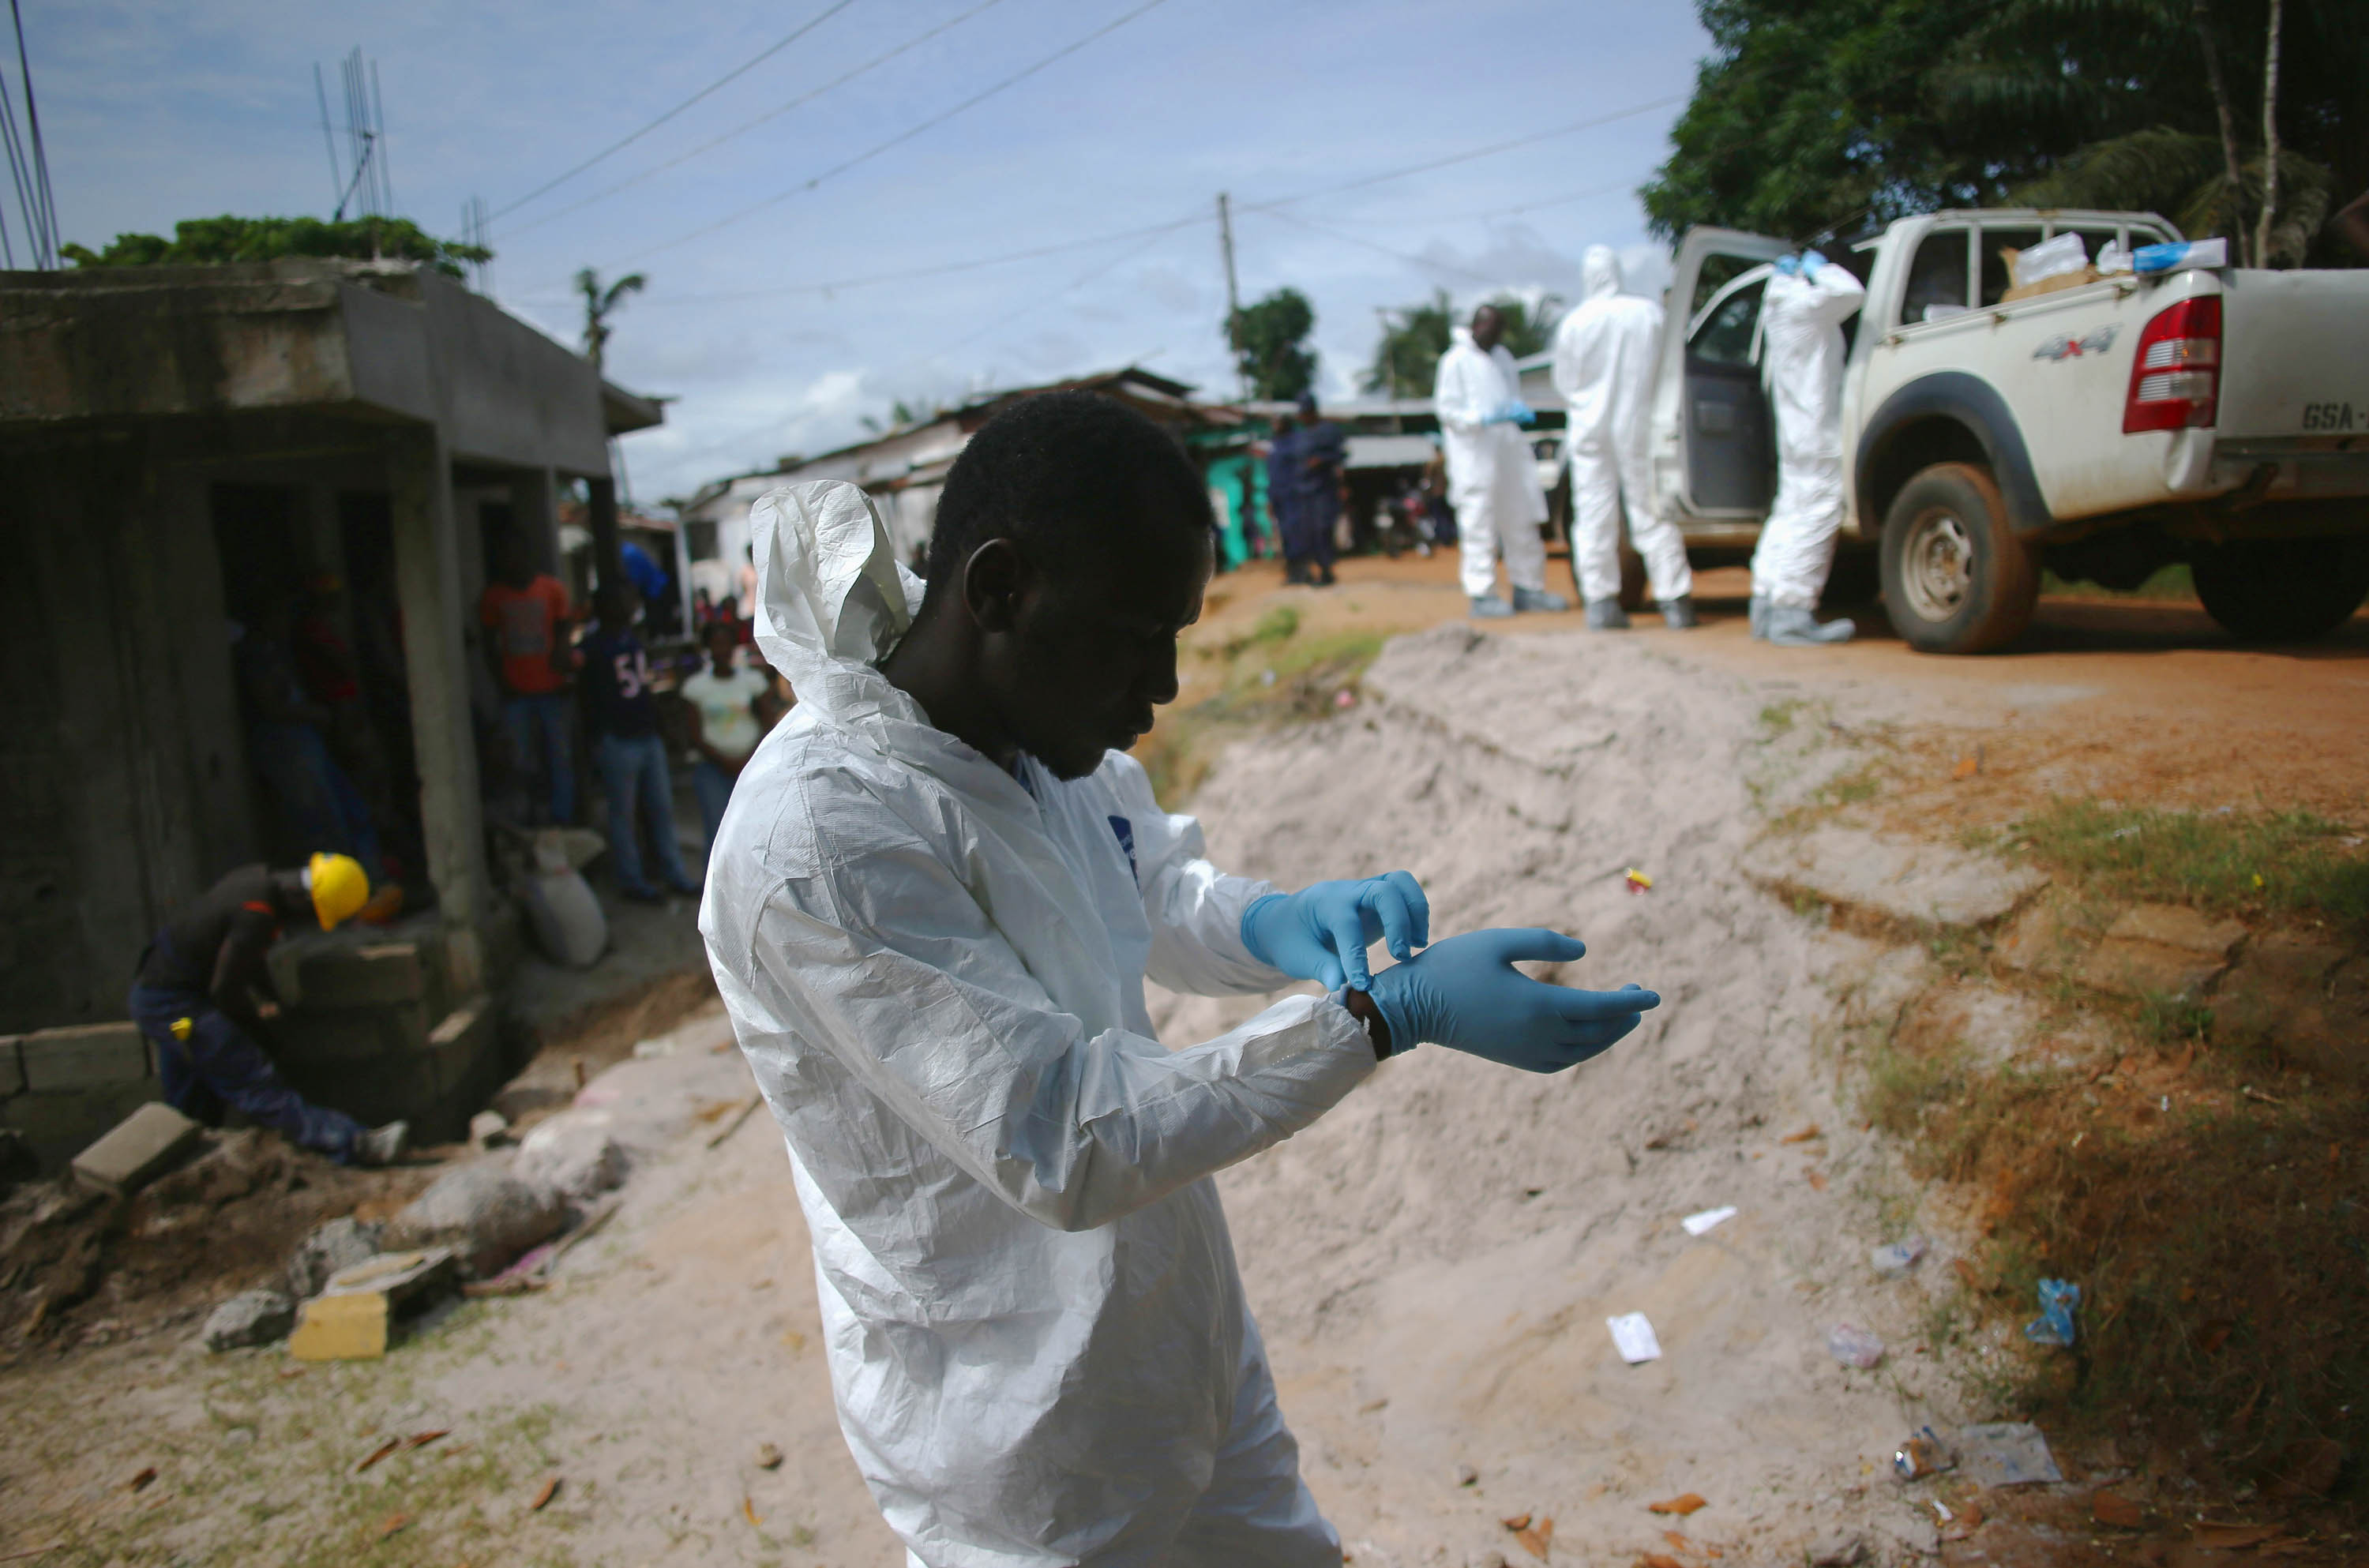 Curbing Ebola spread in West Africa could take six months